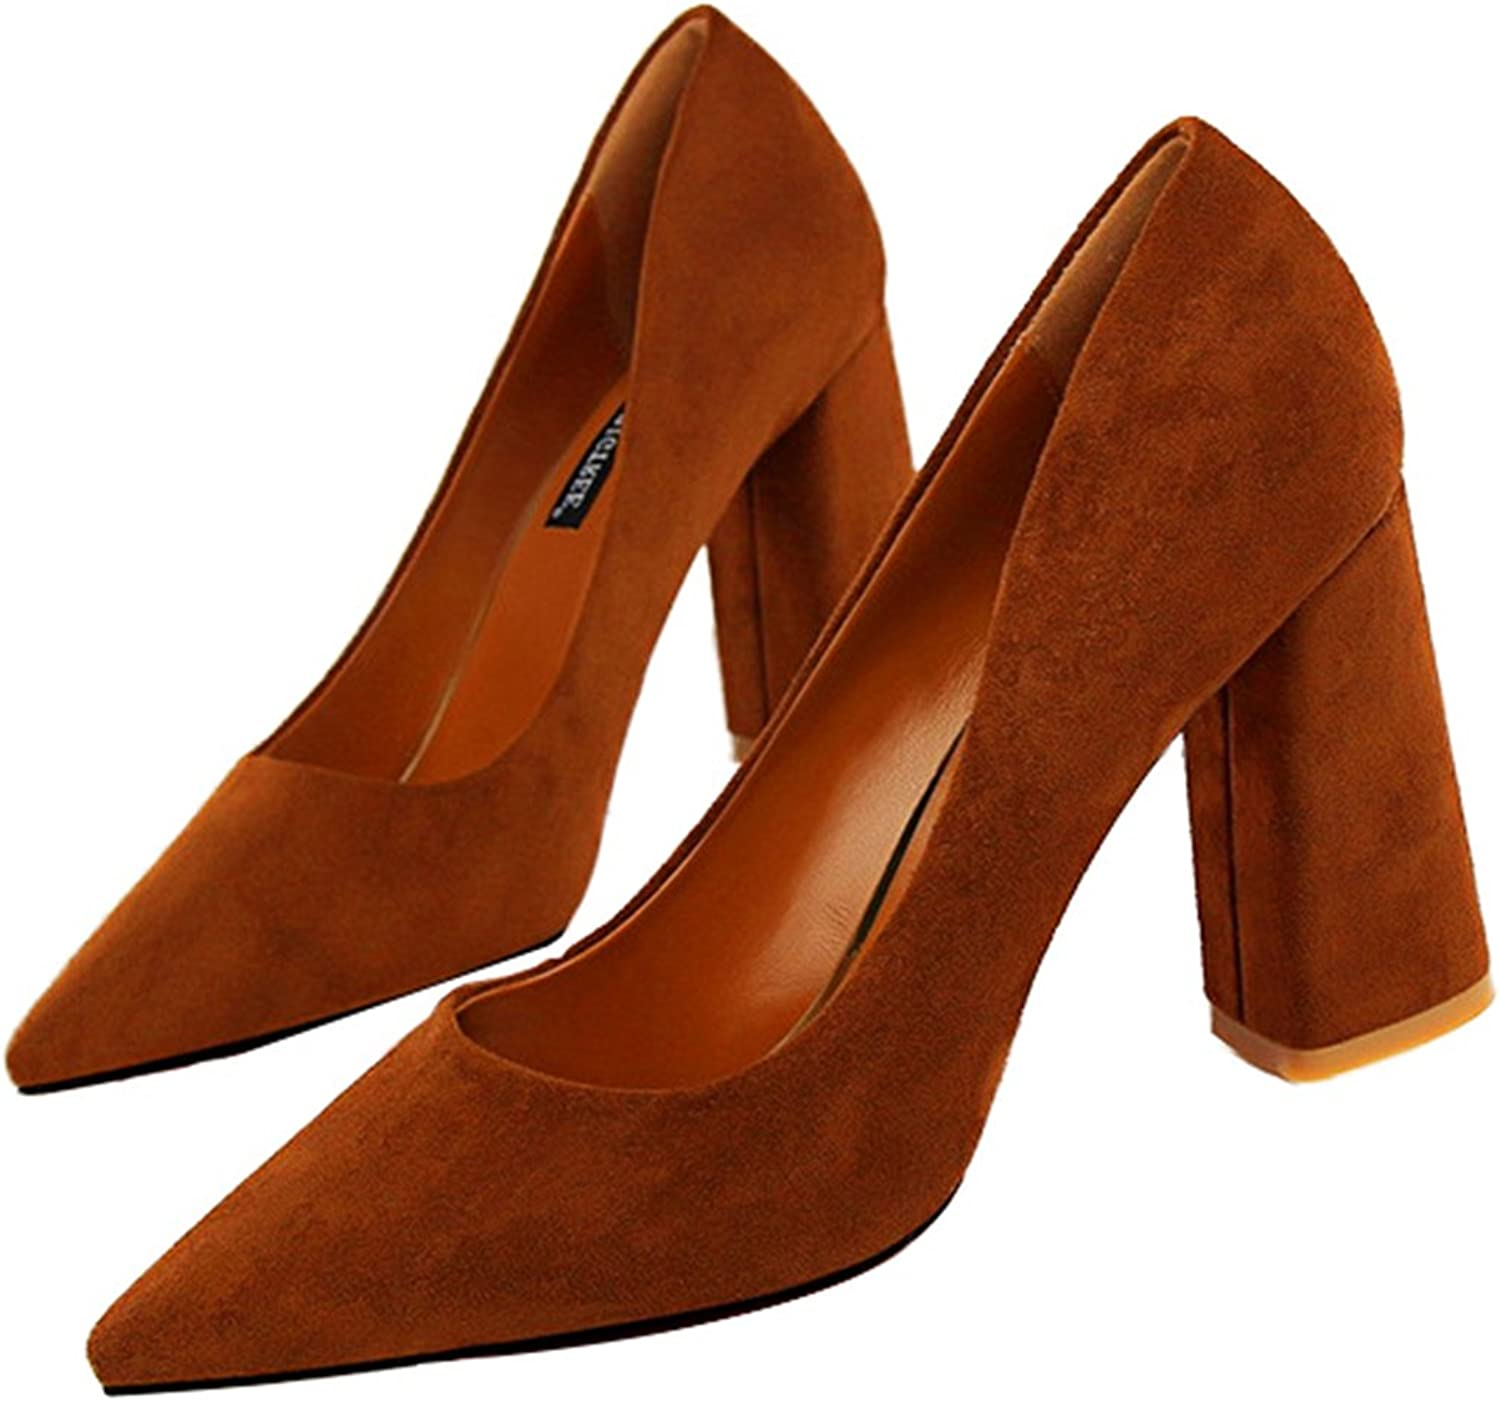 Owen Moll Women Pumps, Fashion Square Heel Solid Shallow Pointed Toe Sandal shoes